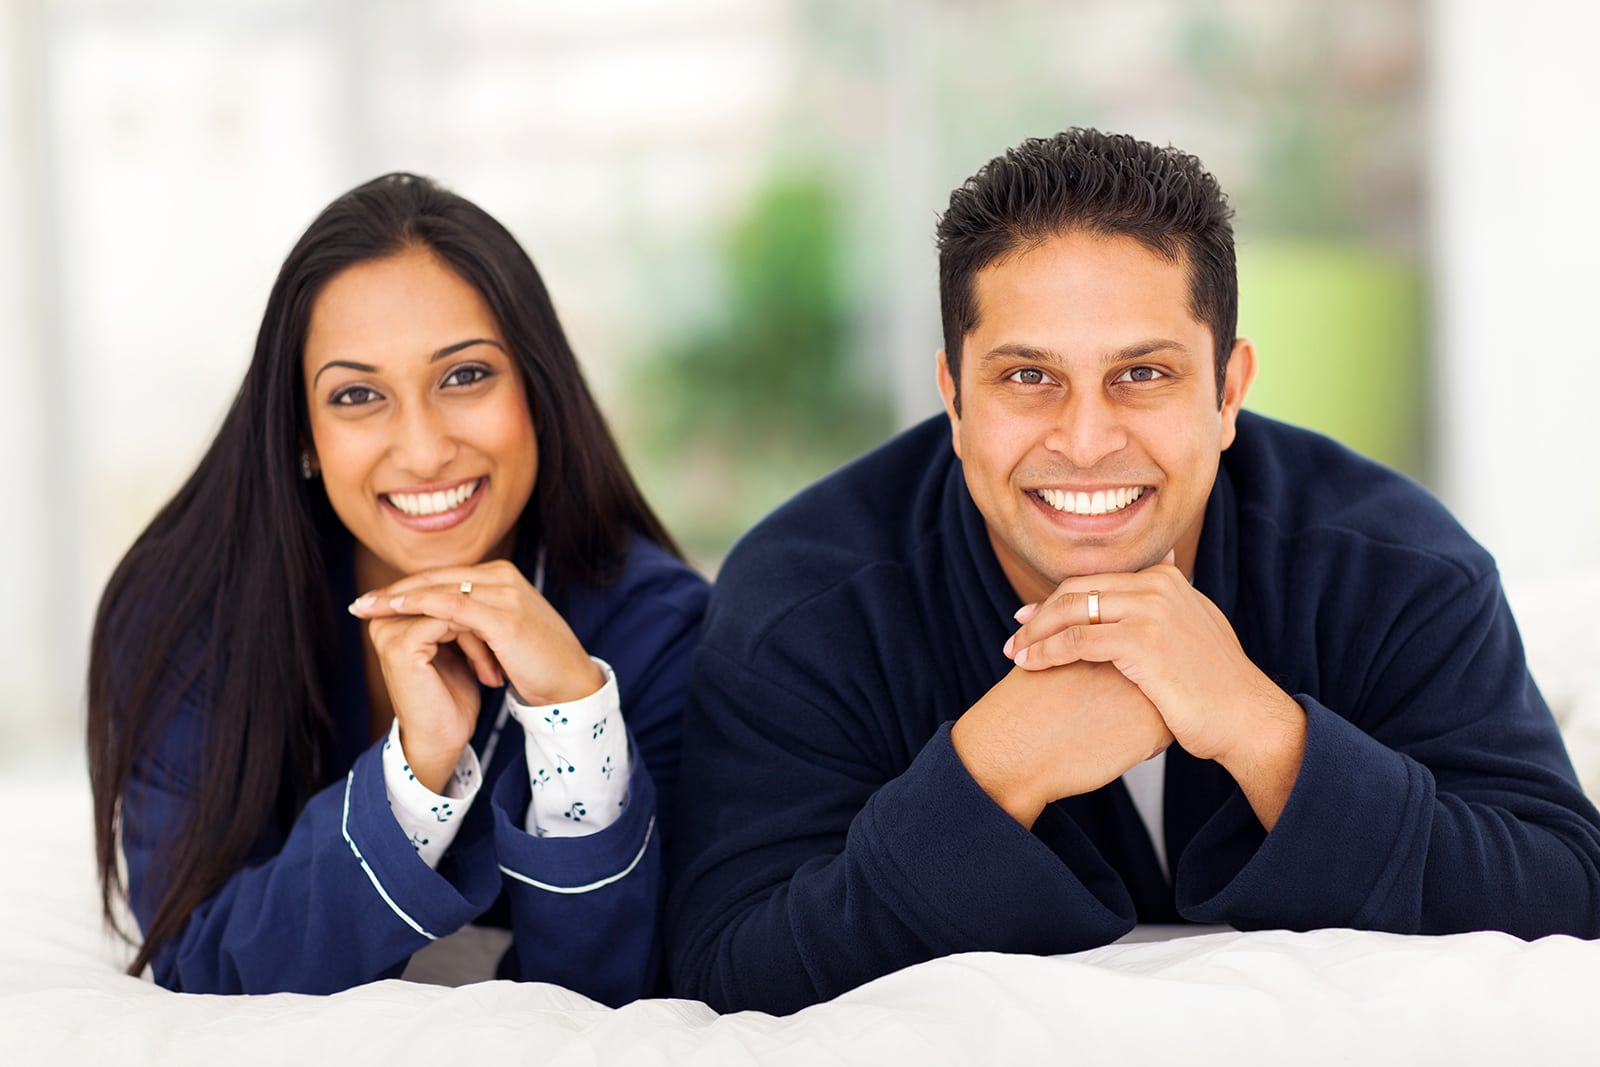 cosmetic bonding - Our Services